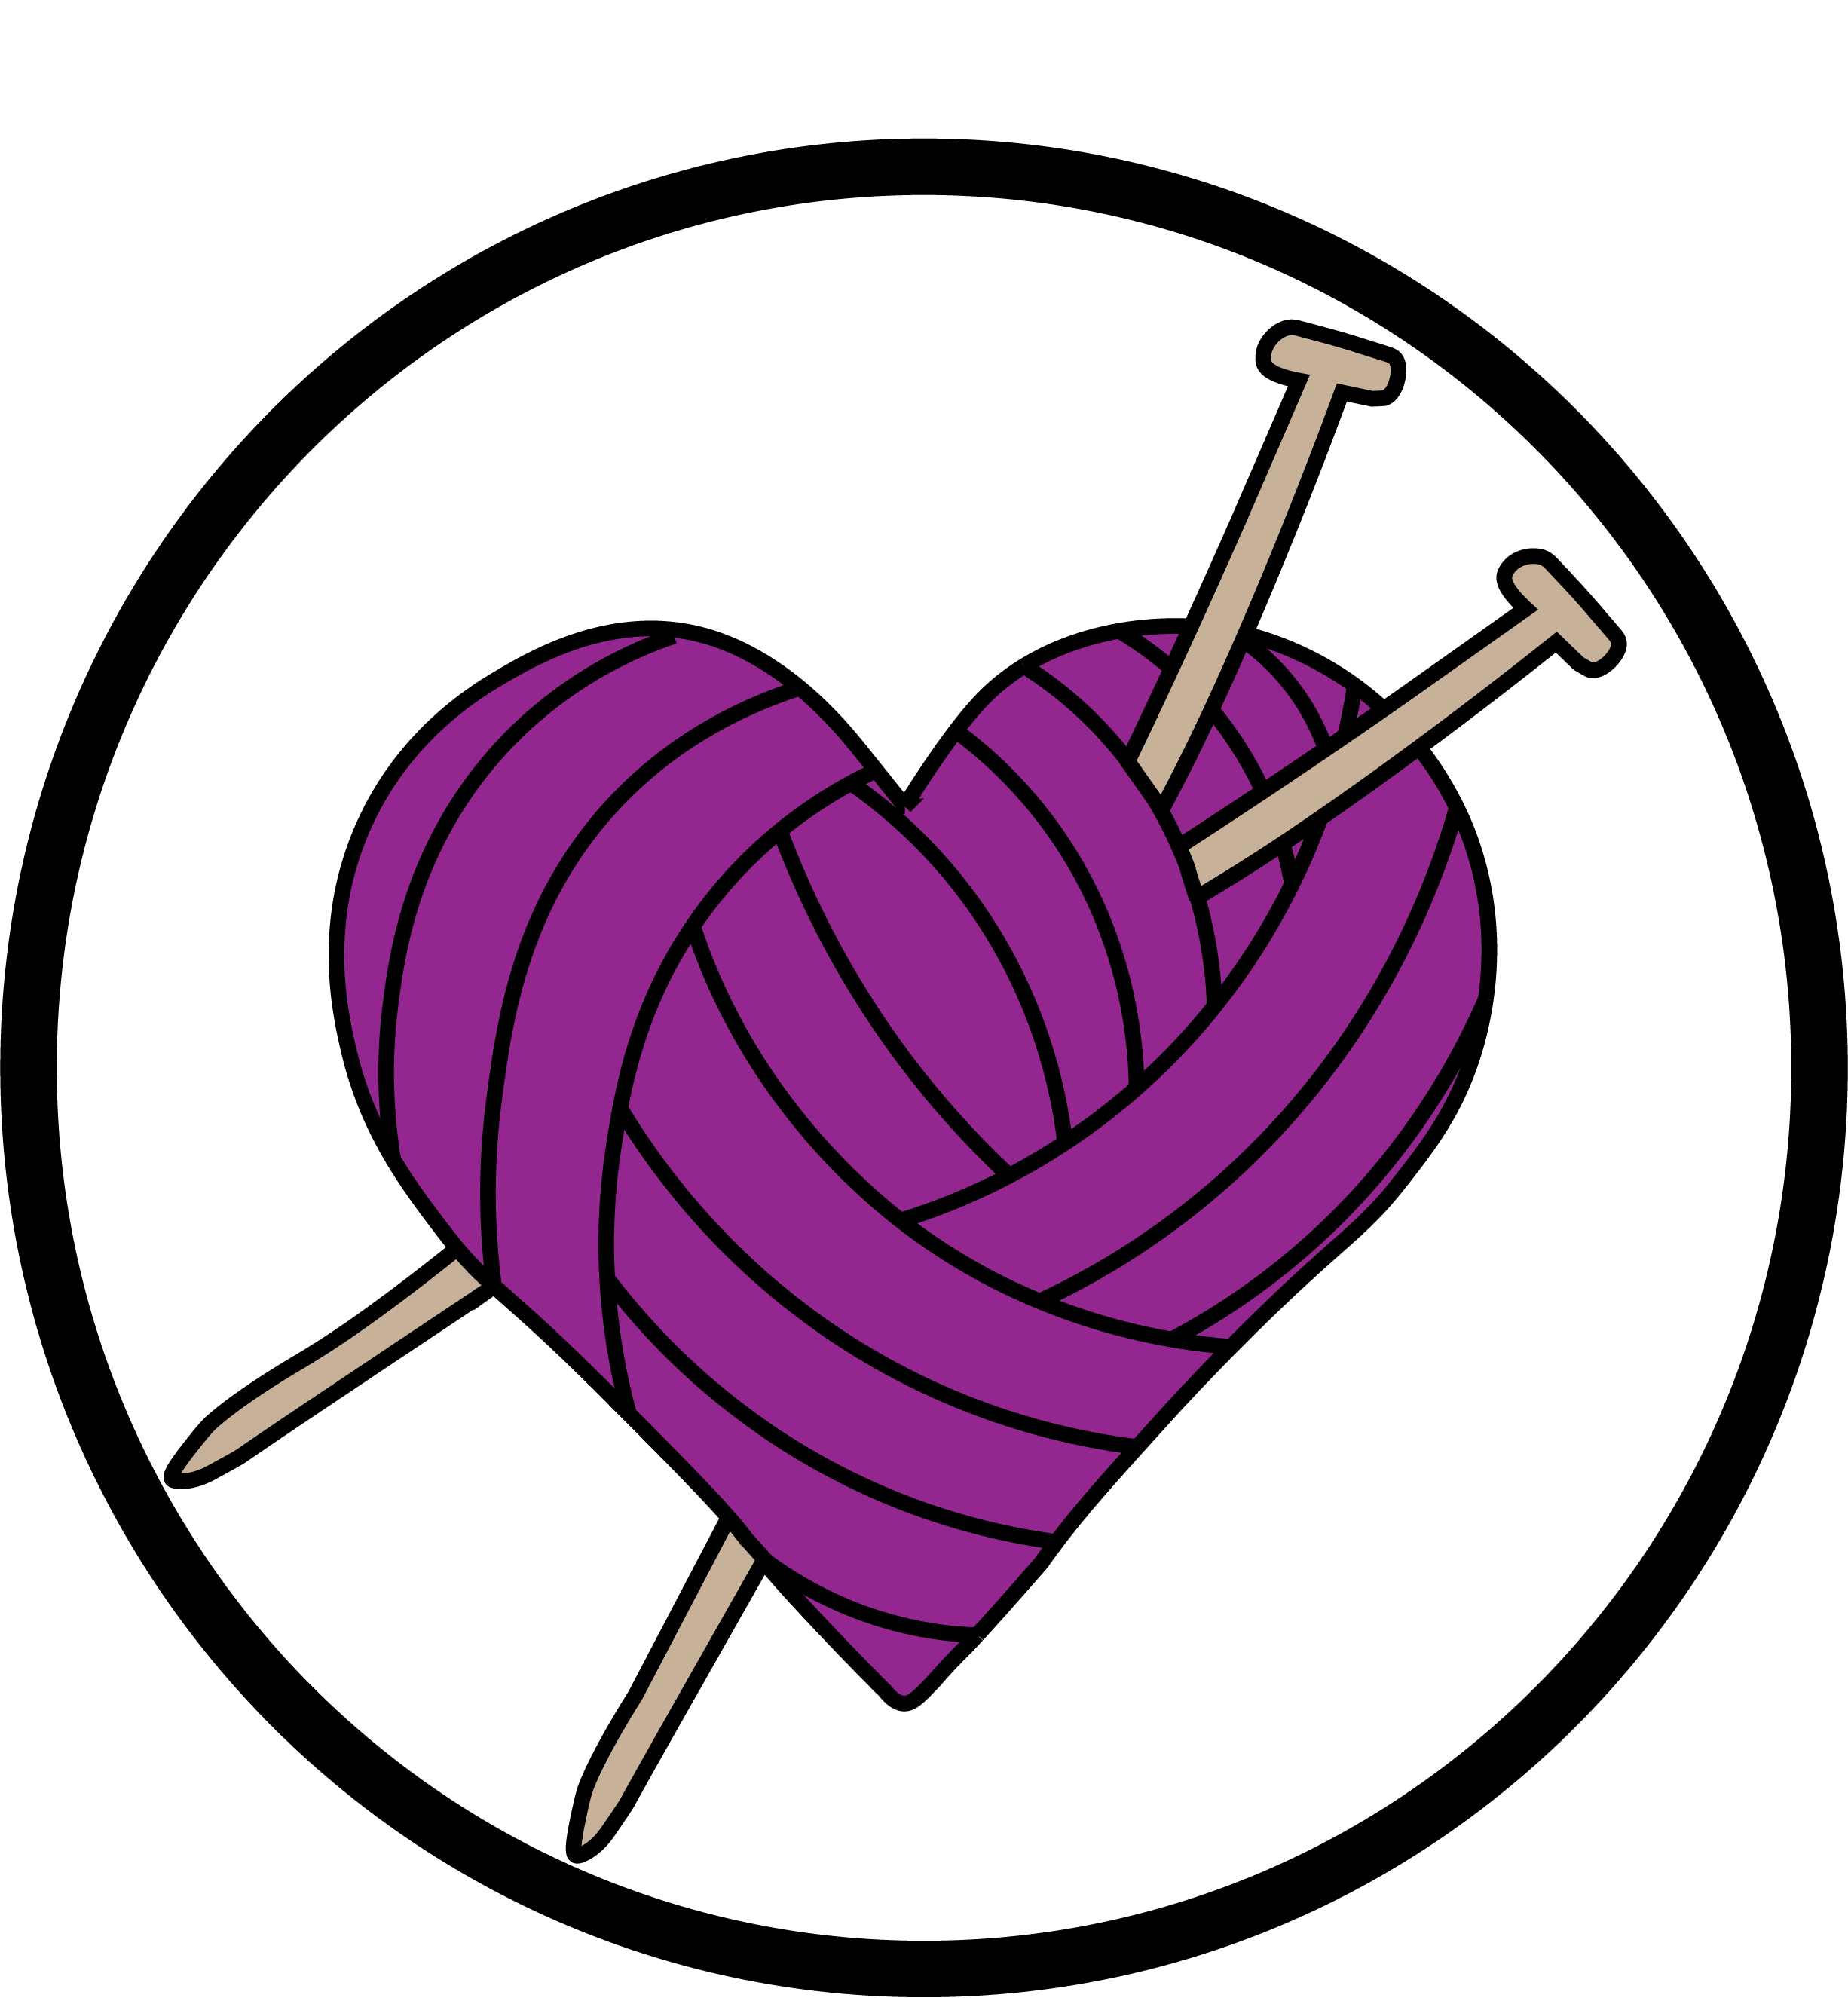 Crochet clipart knitting group, Picture #837747 crochet.